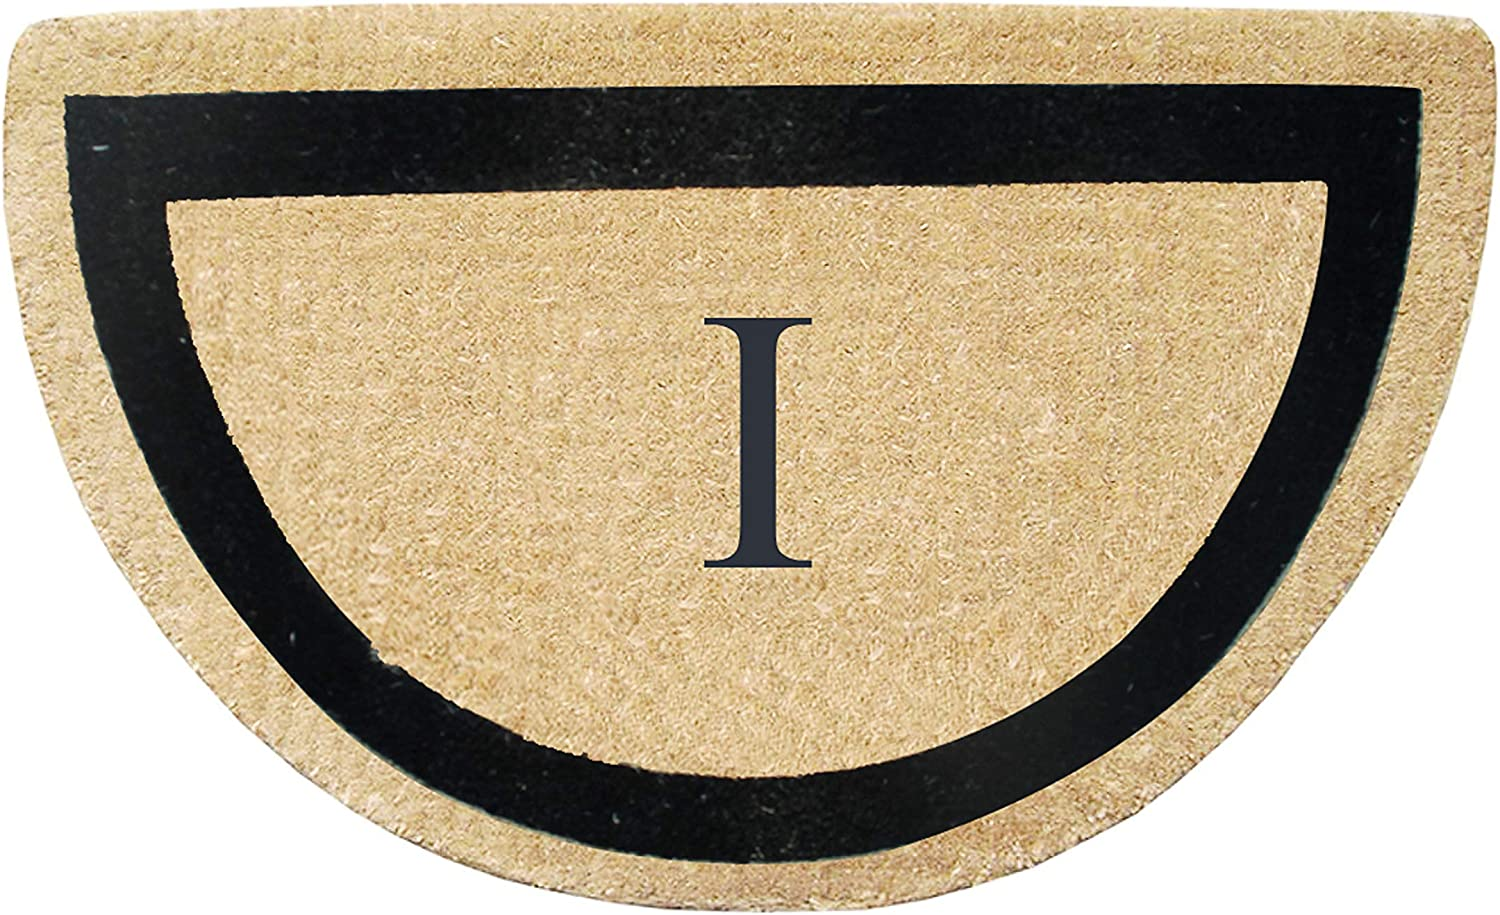 A1 HOME COLLECTIONS First Impression A1HC Engineered Half Round Coir Doormat, 24 x36 (PT2004I)